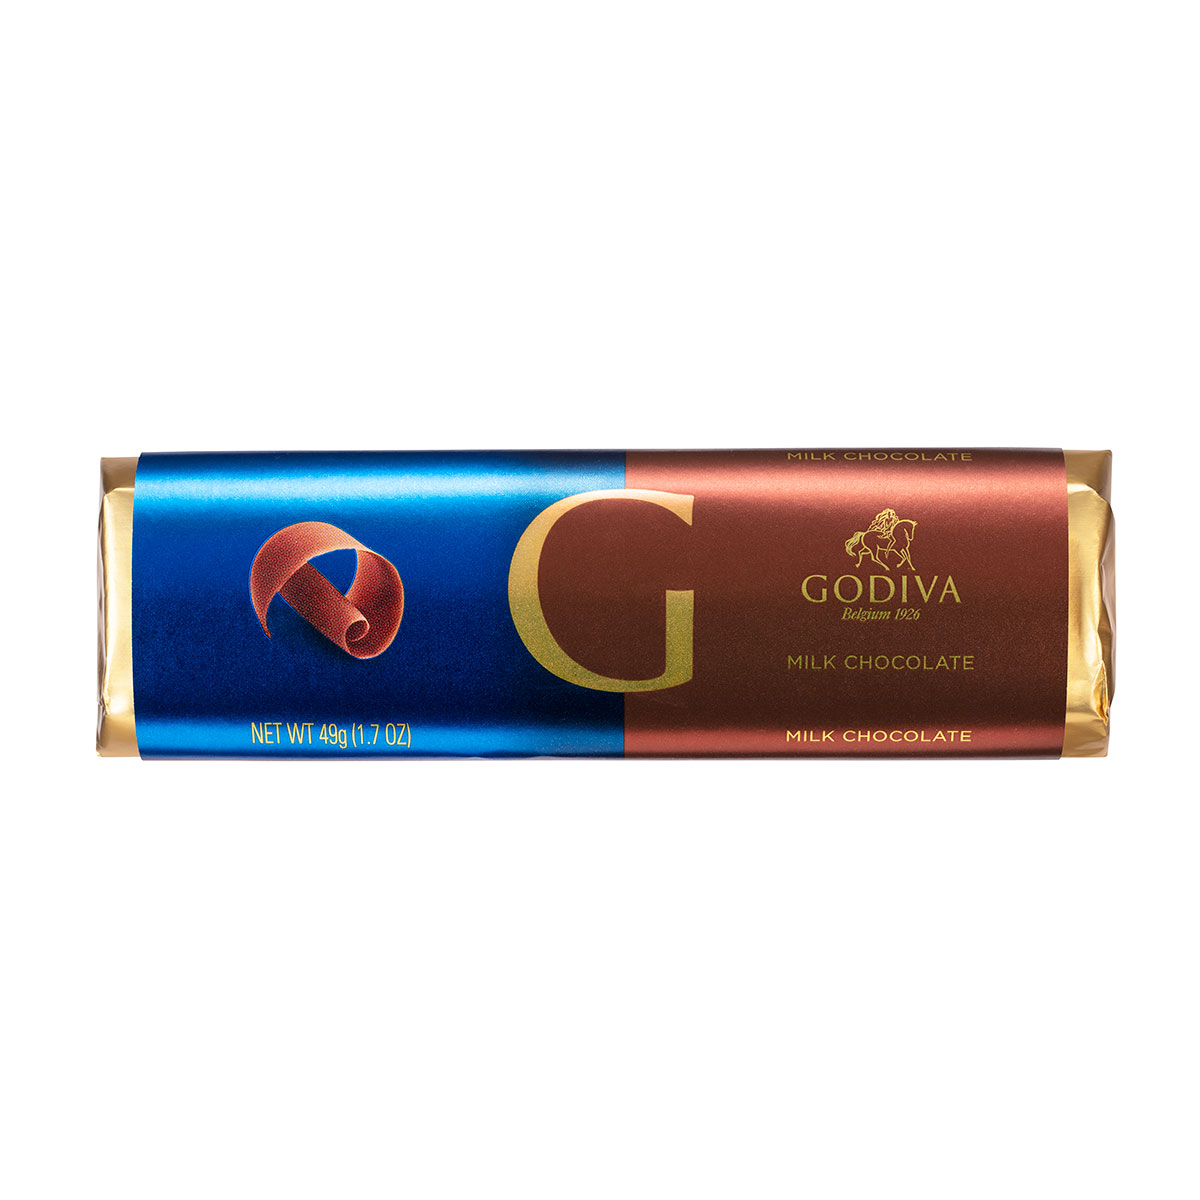 Godiva Bar Milk Chocolate, 49 g - Delivery in Europe Others - Godiva